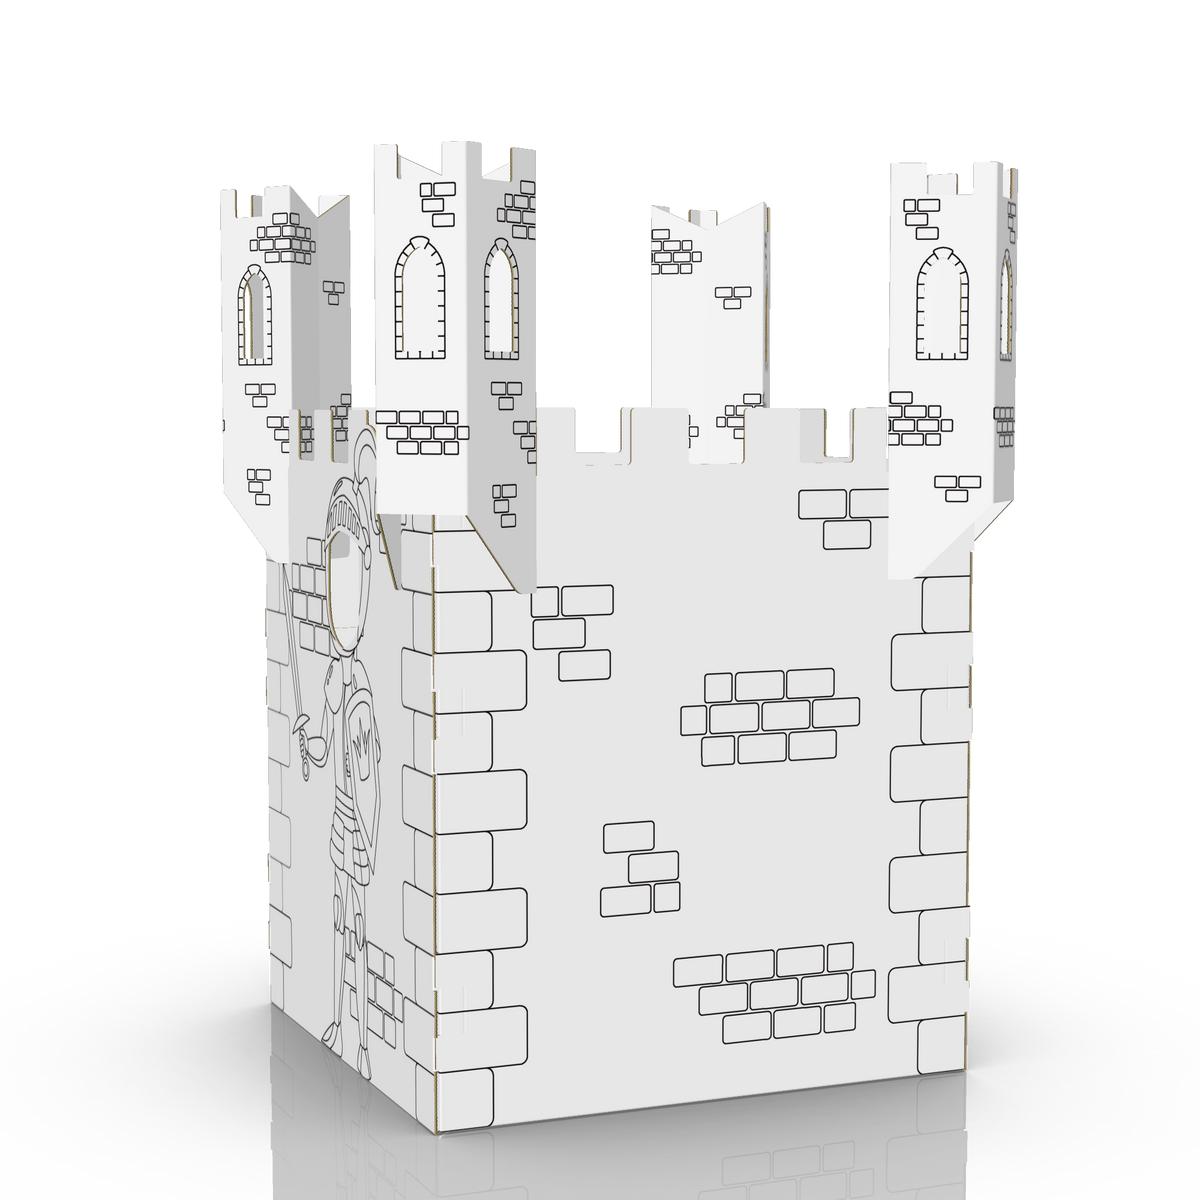 COLOUR-IN KNIGHT'S CASTLE